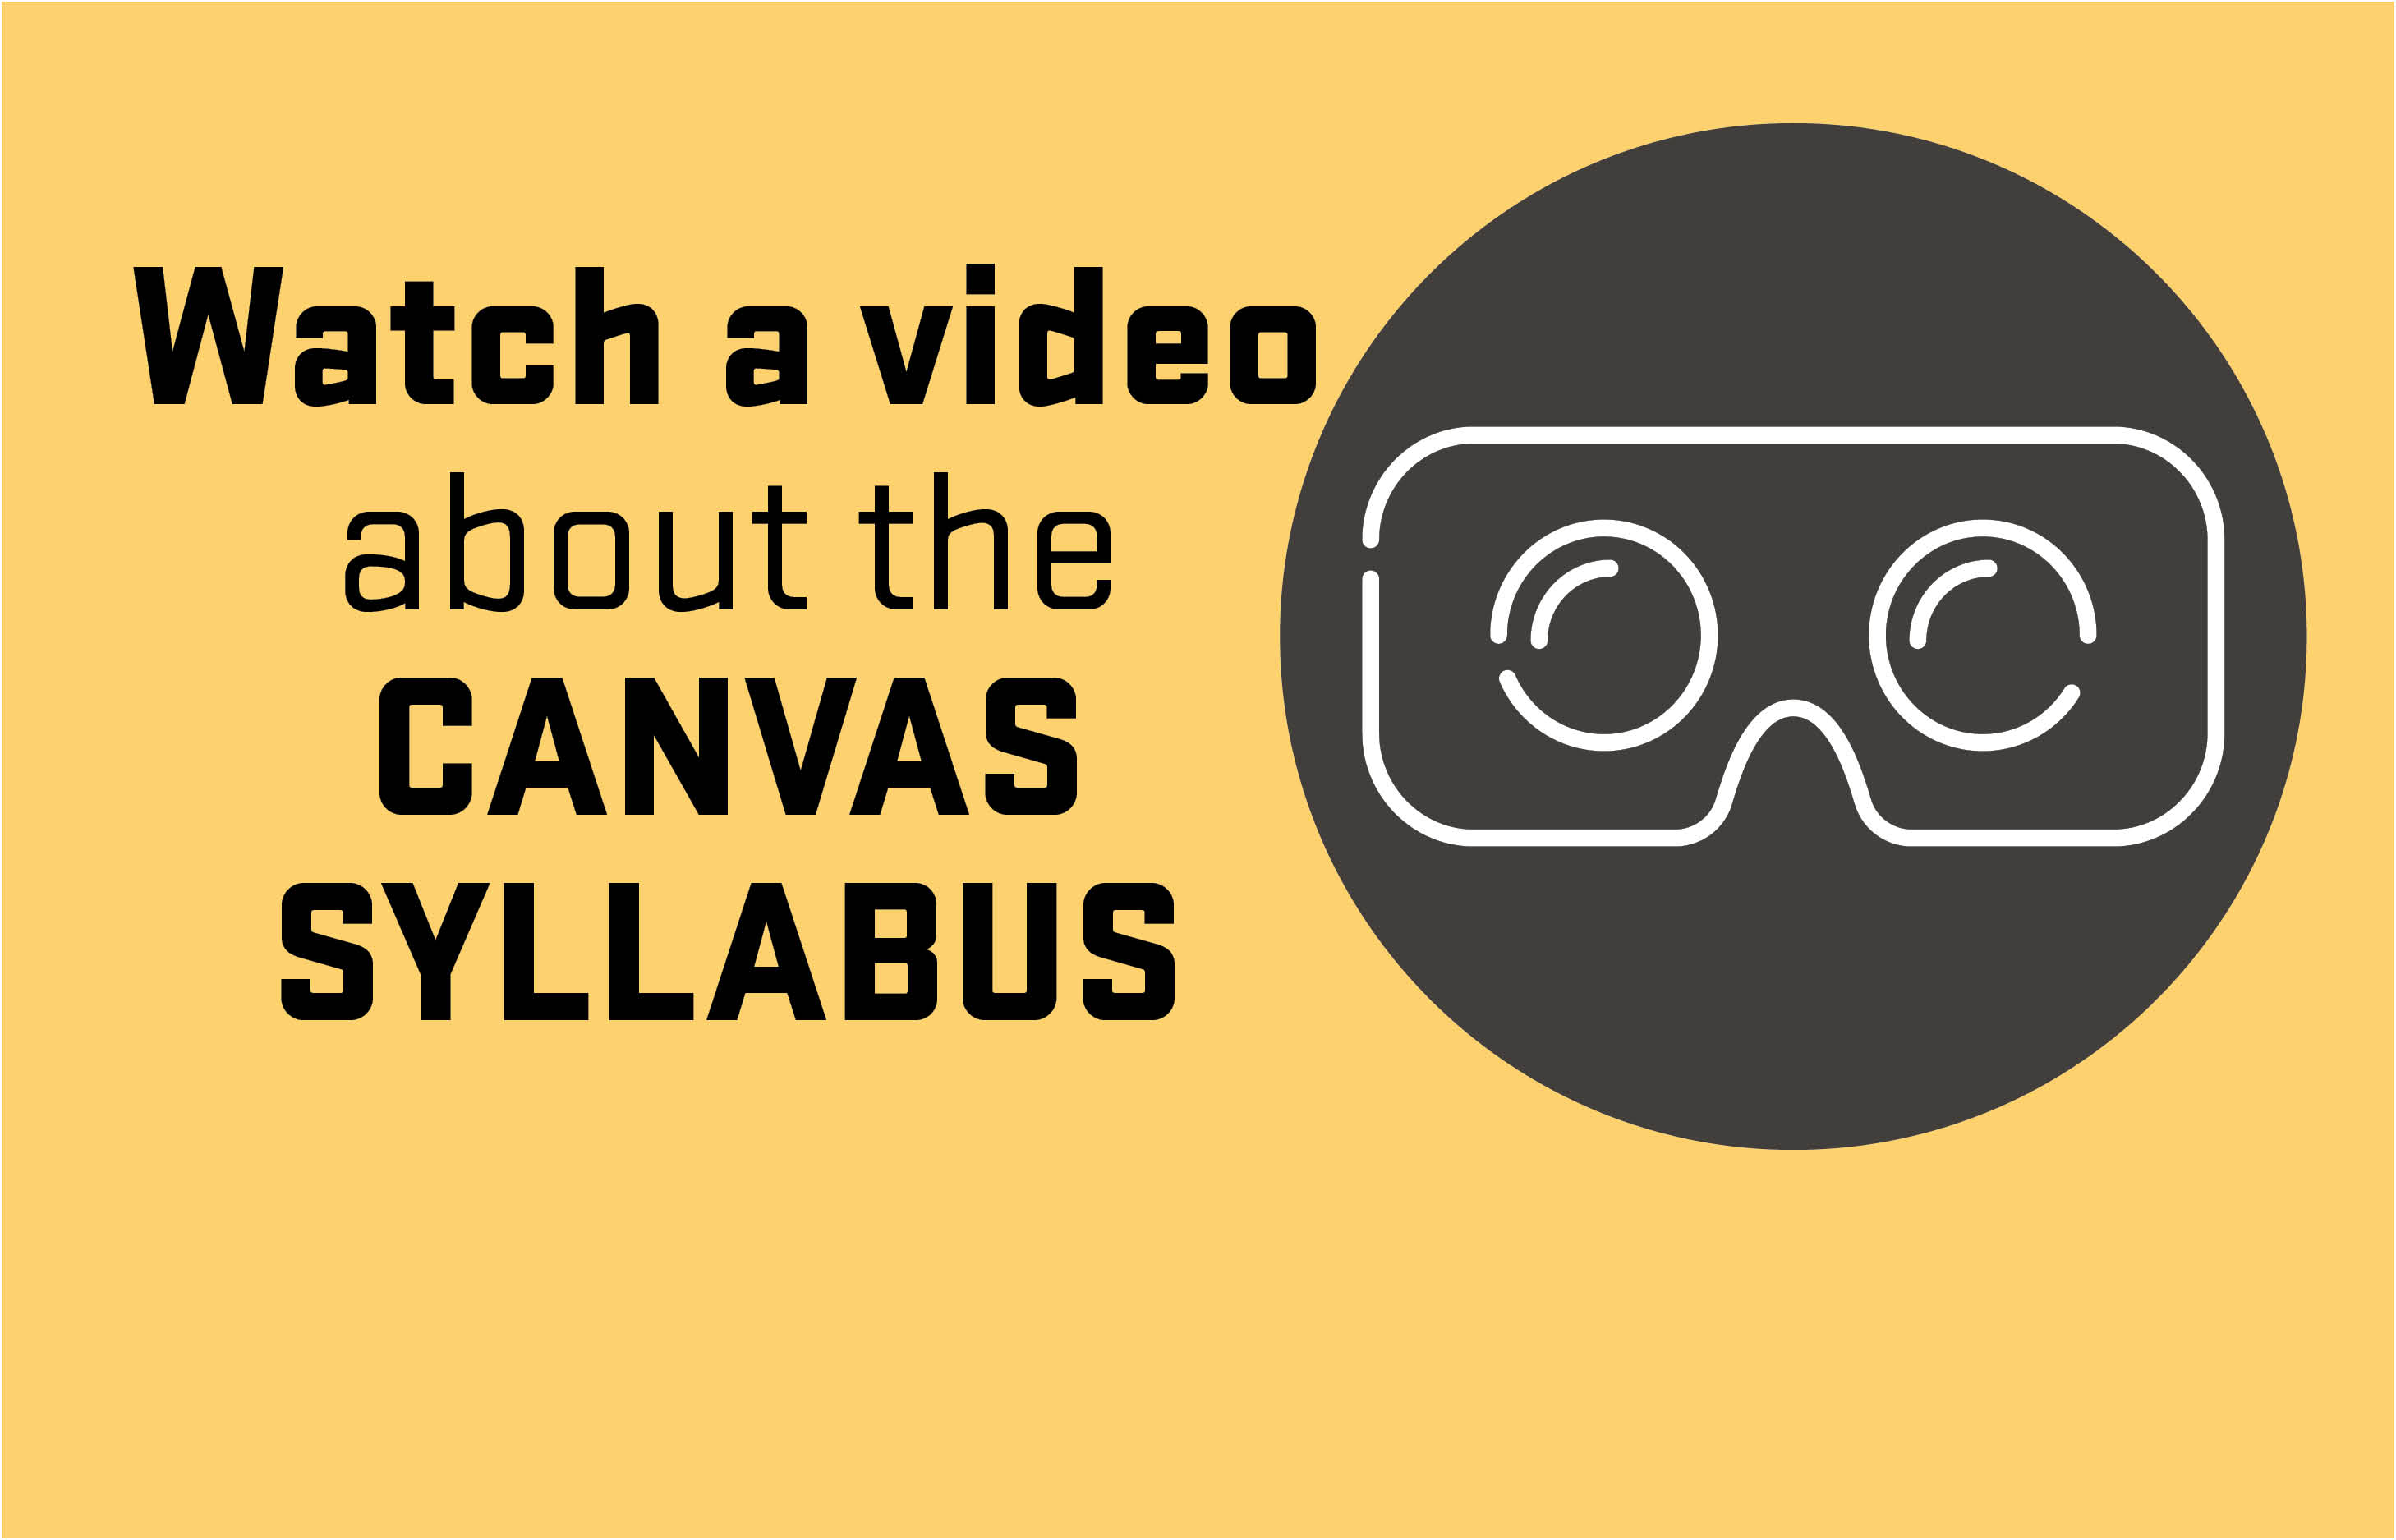 Watch a Video about the Canvas Syllabus